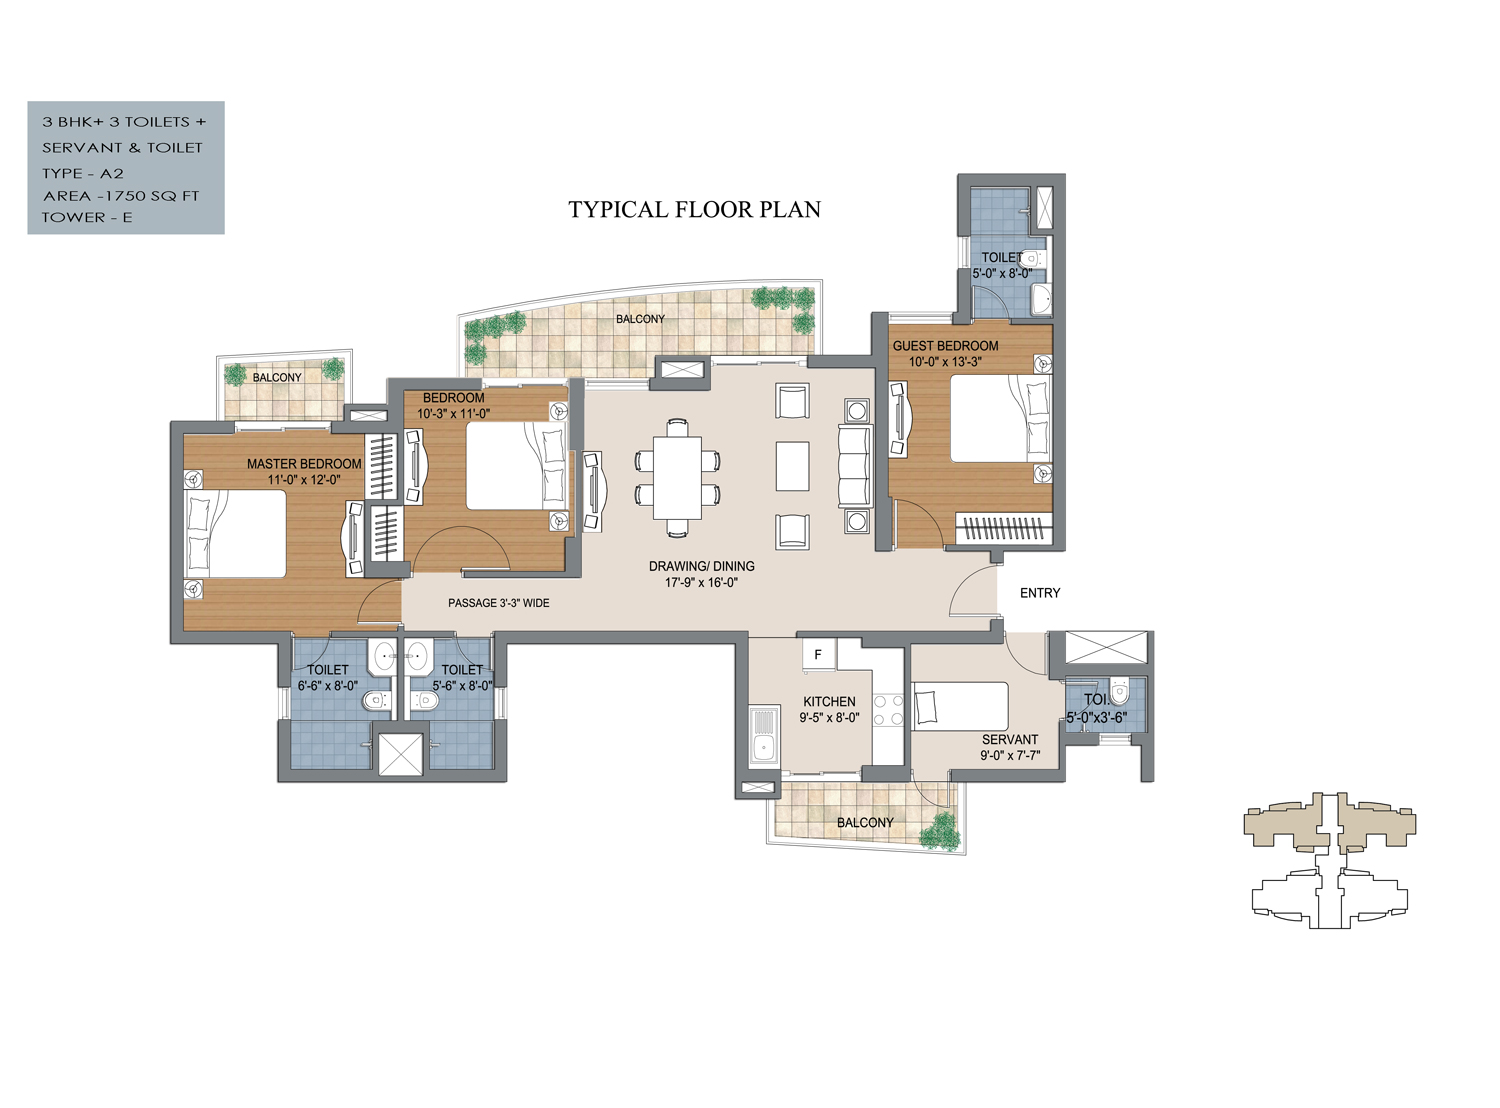 3 bhk floor plan of bptp the resort with 1875 sq feet